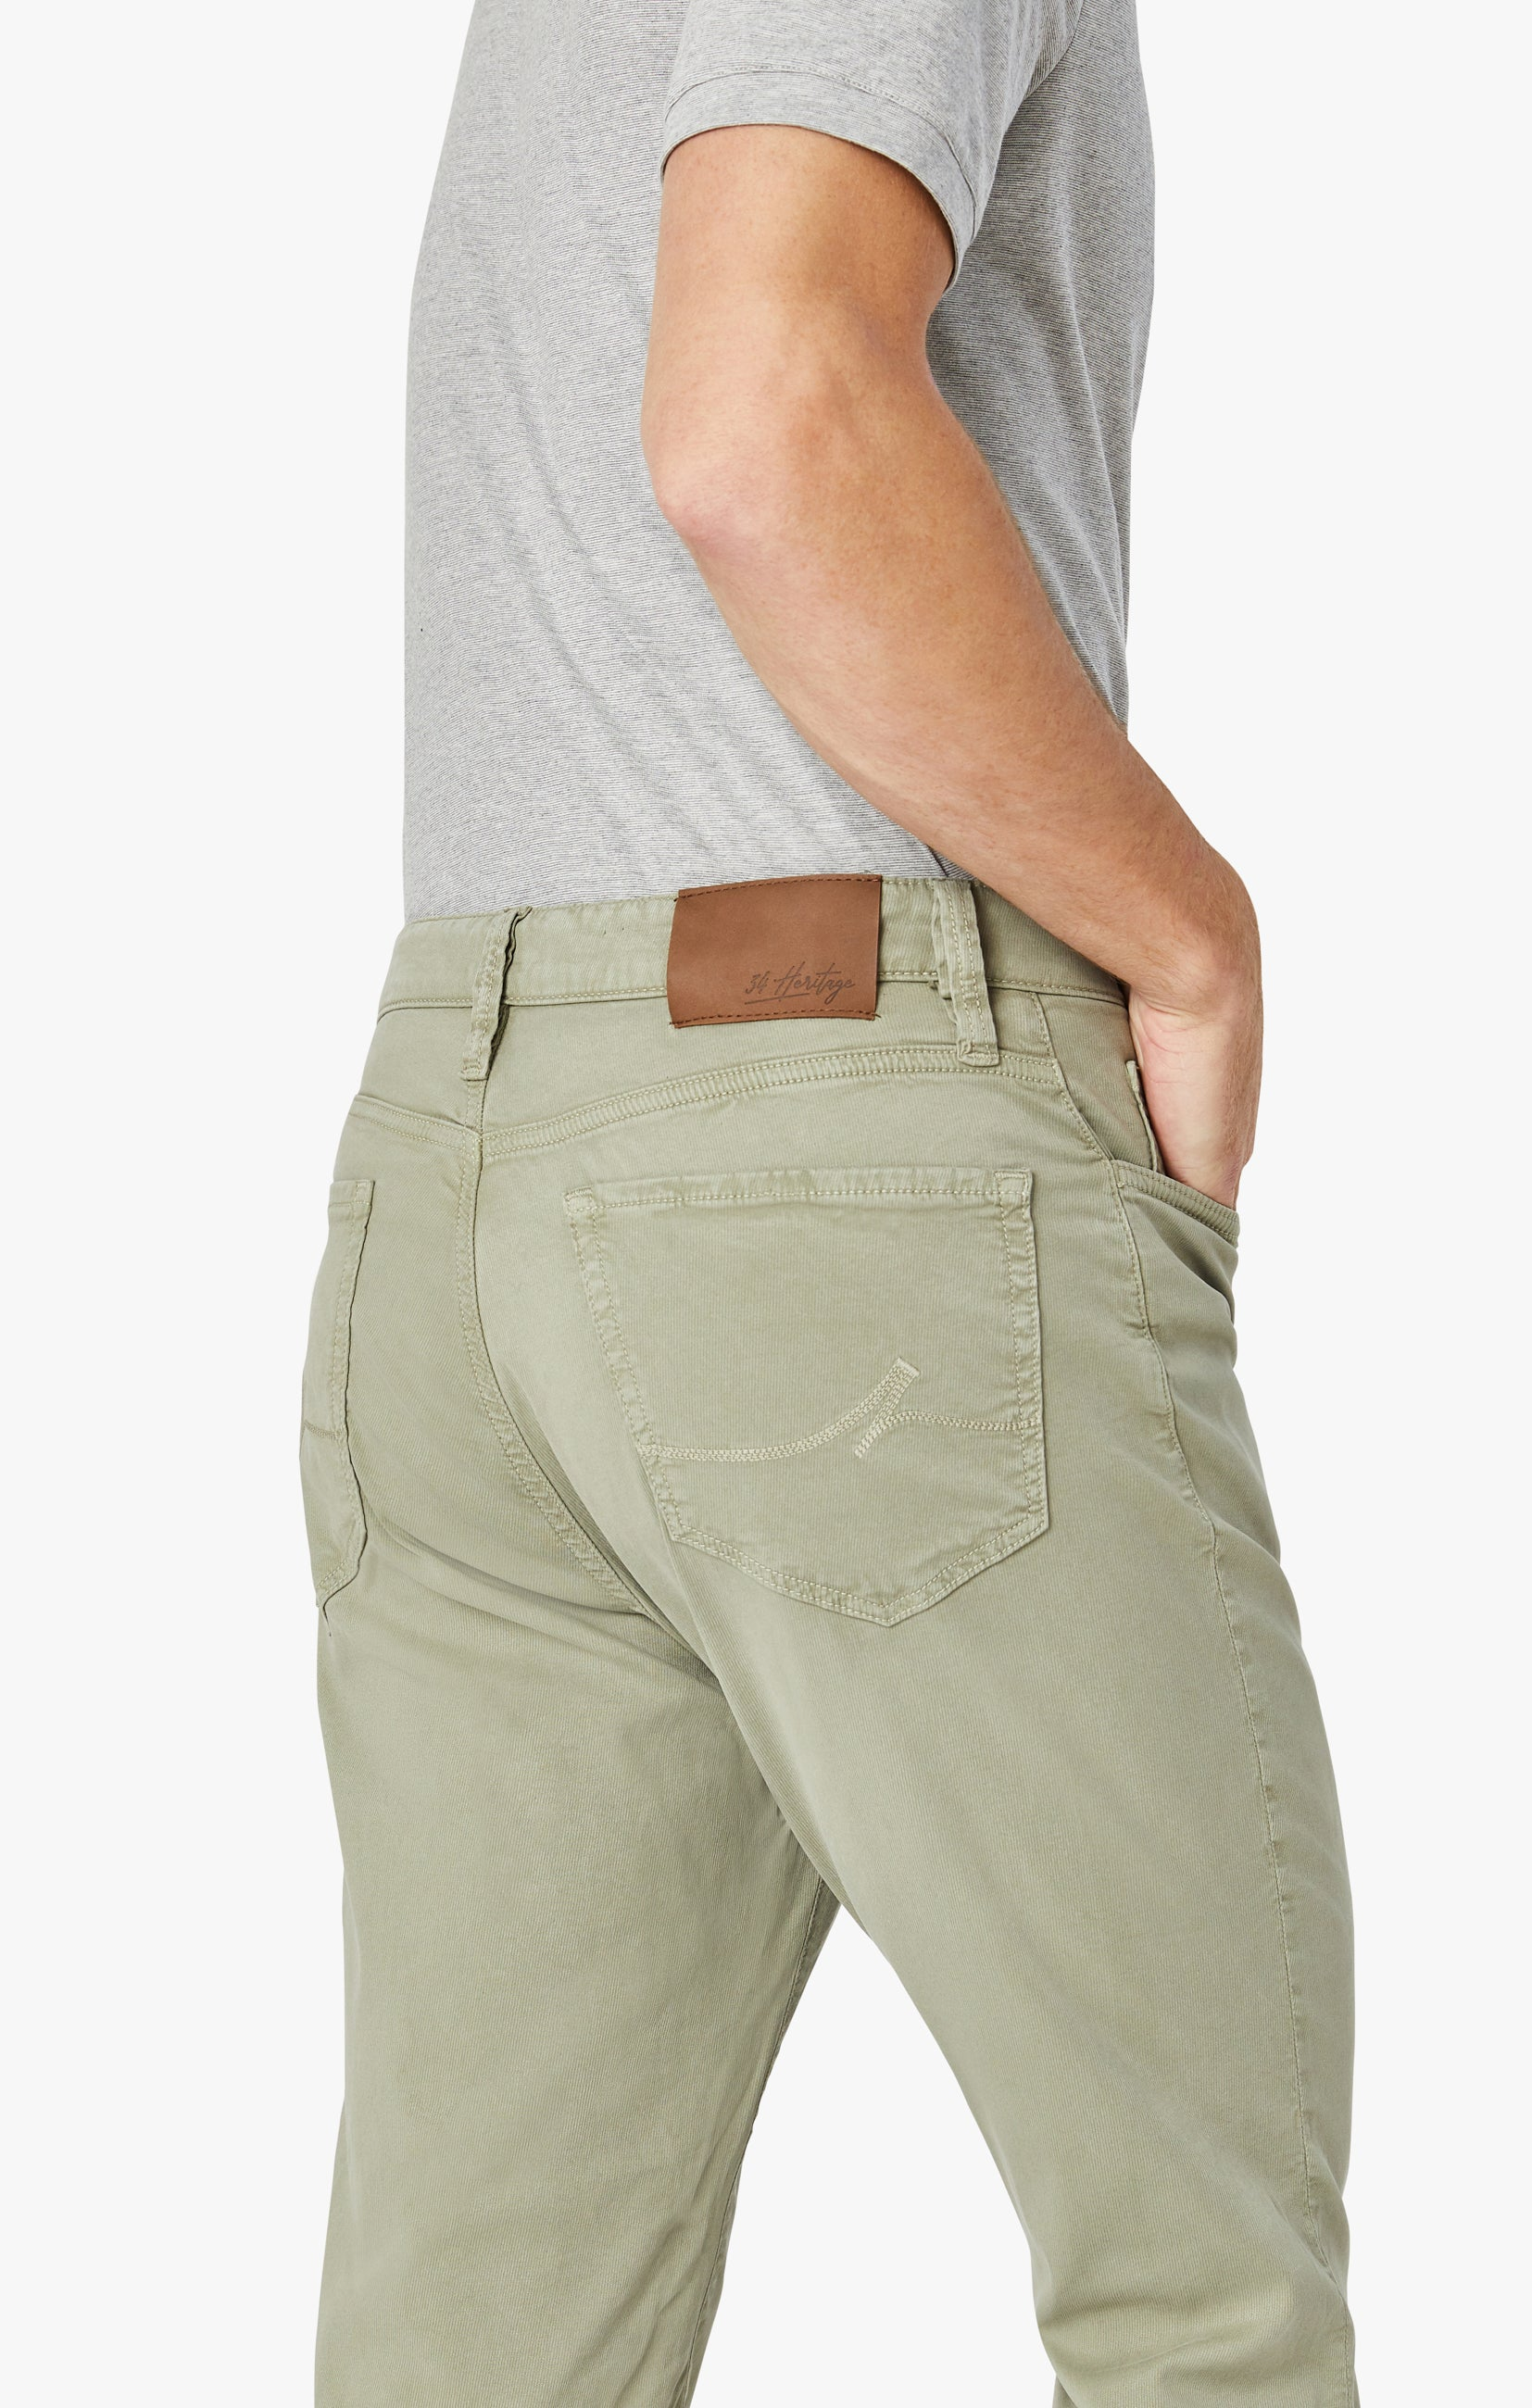 Charisma Relaxed Straight Pants In Sage Soft Touch Image 7